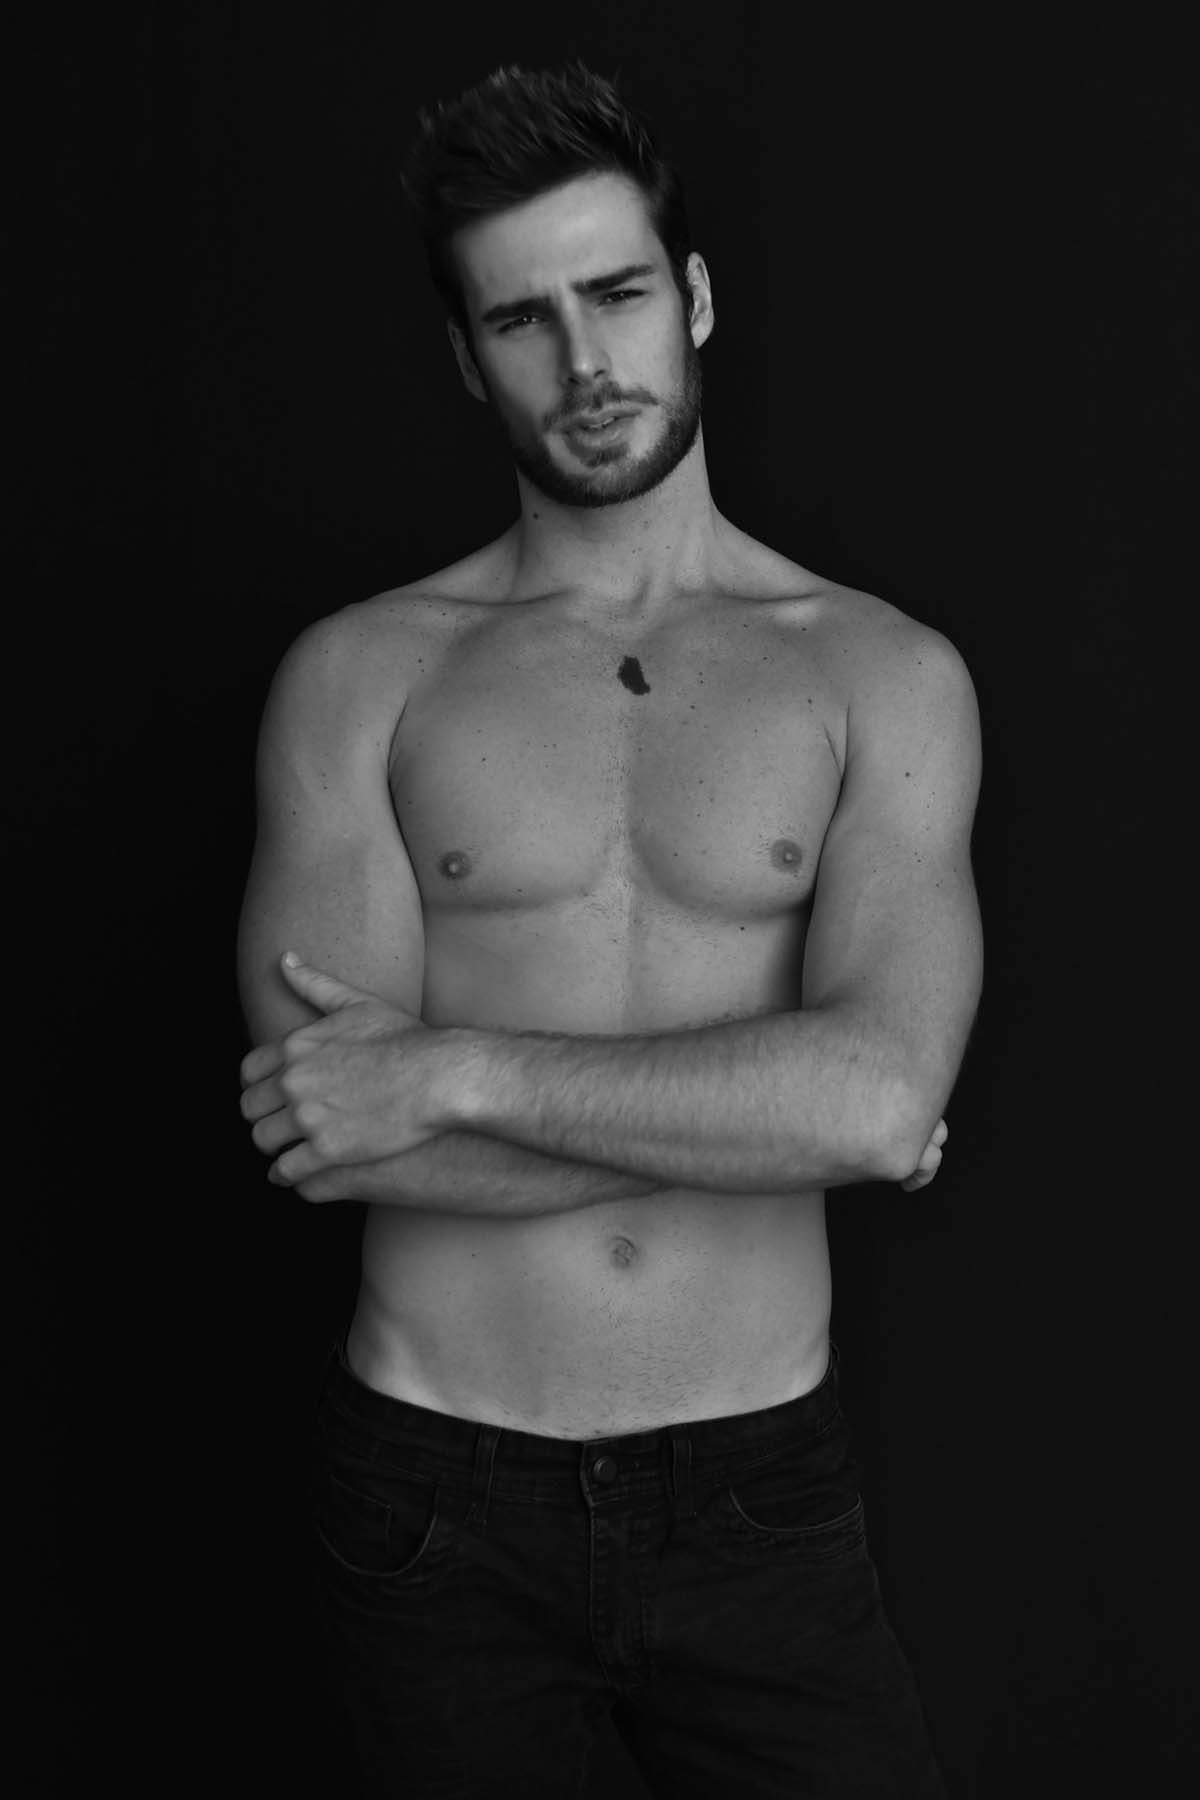 Victor Benain by Vinicius Zievinic for Brazilian Male Model